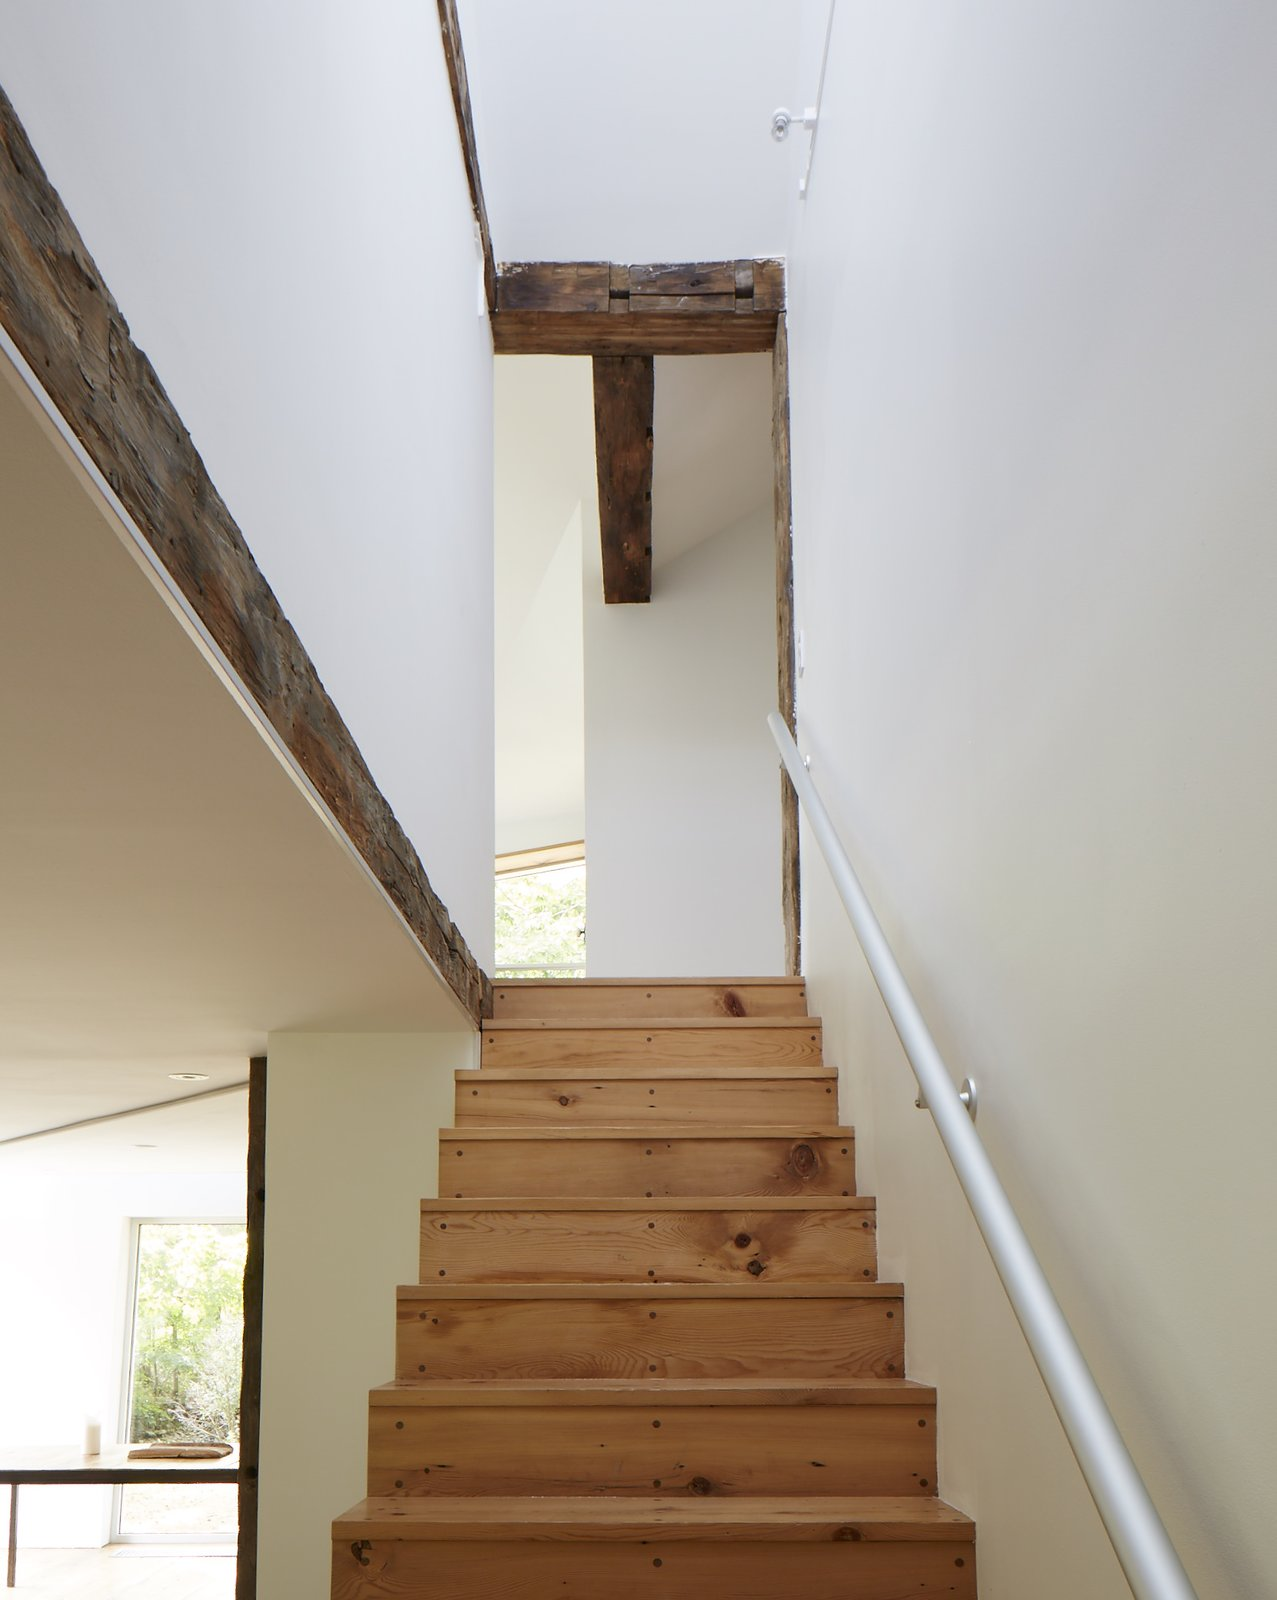 An anodized aluminum handrail and original exposed beams in the vaulted stairwell. The minimalist staircase is crafted from the farmhouse's original wall planks.  twist farmhouse